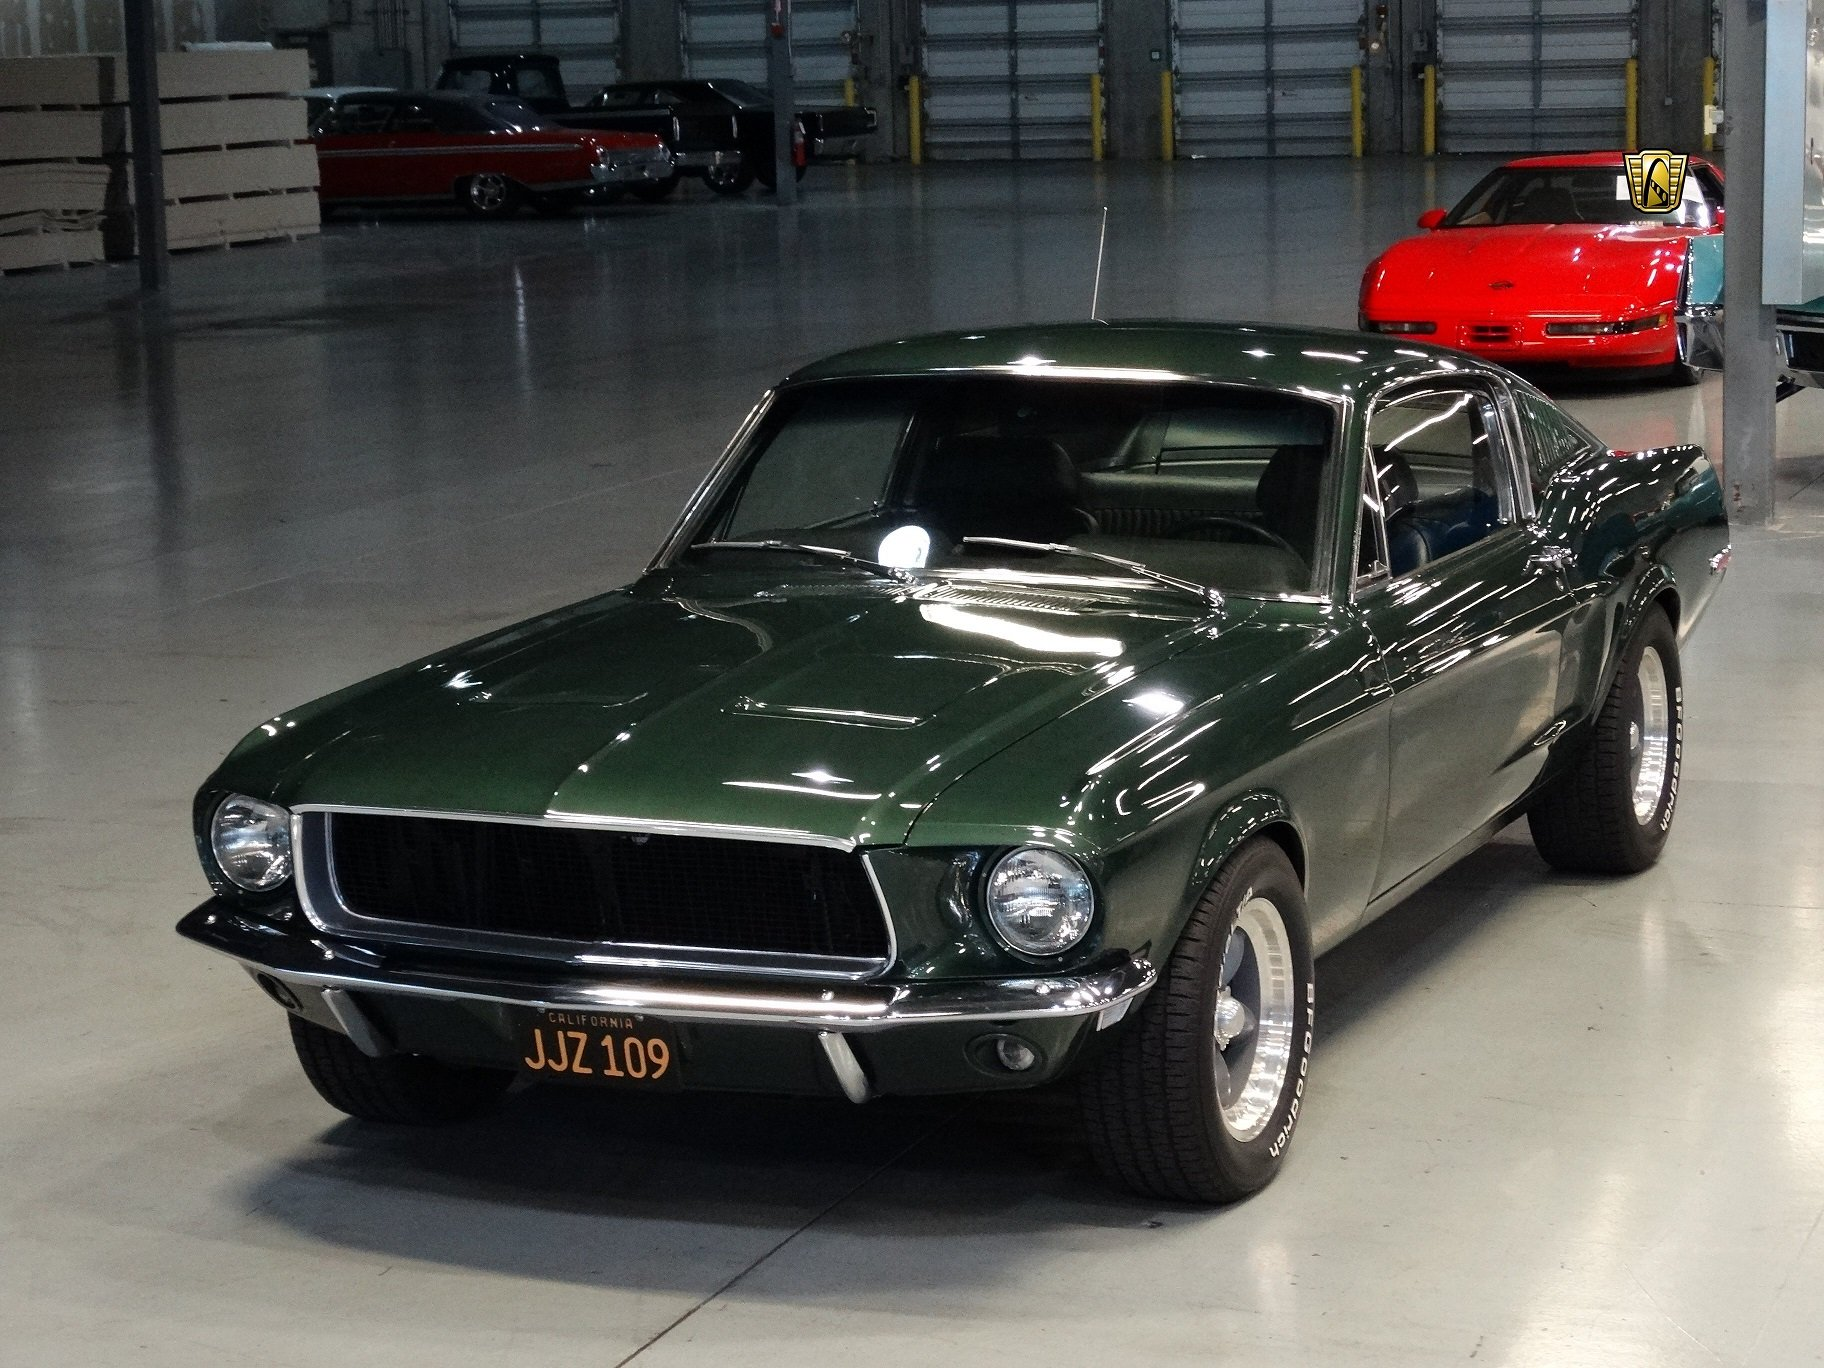 1968 ford mustang bullitt 390 fastback green cars classic wallpaper 1824x1368 802264. Black Bedroom Furniture Sets. Home Design Ideas